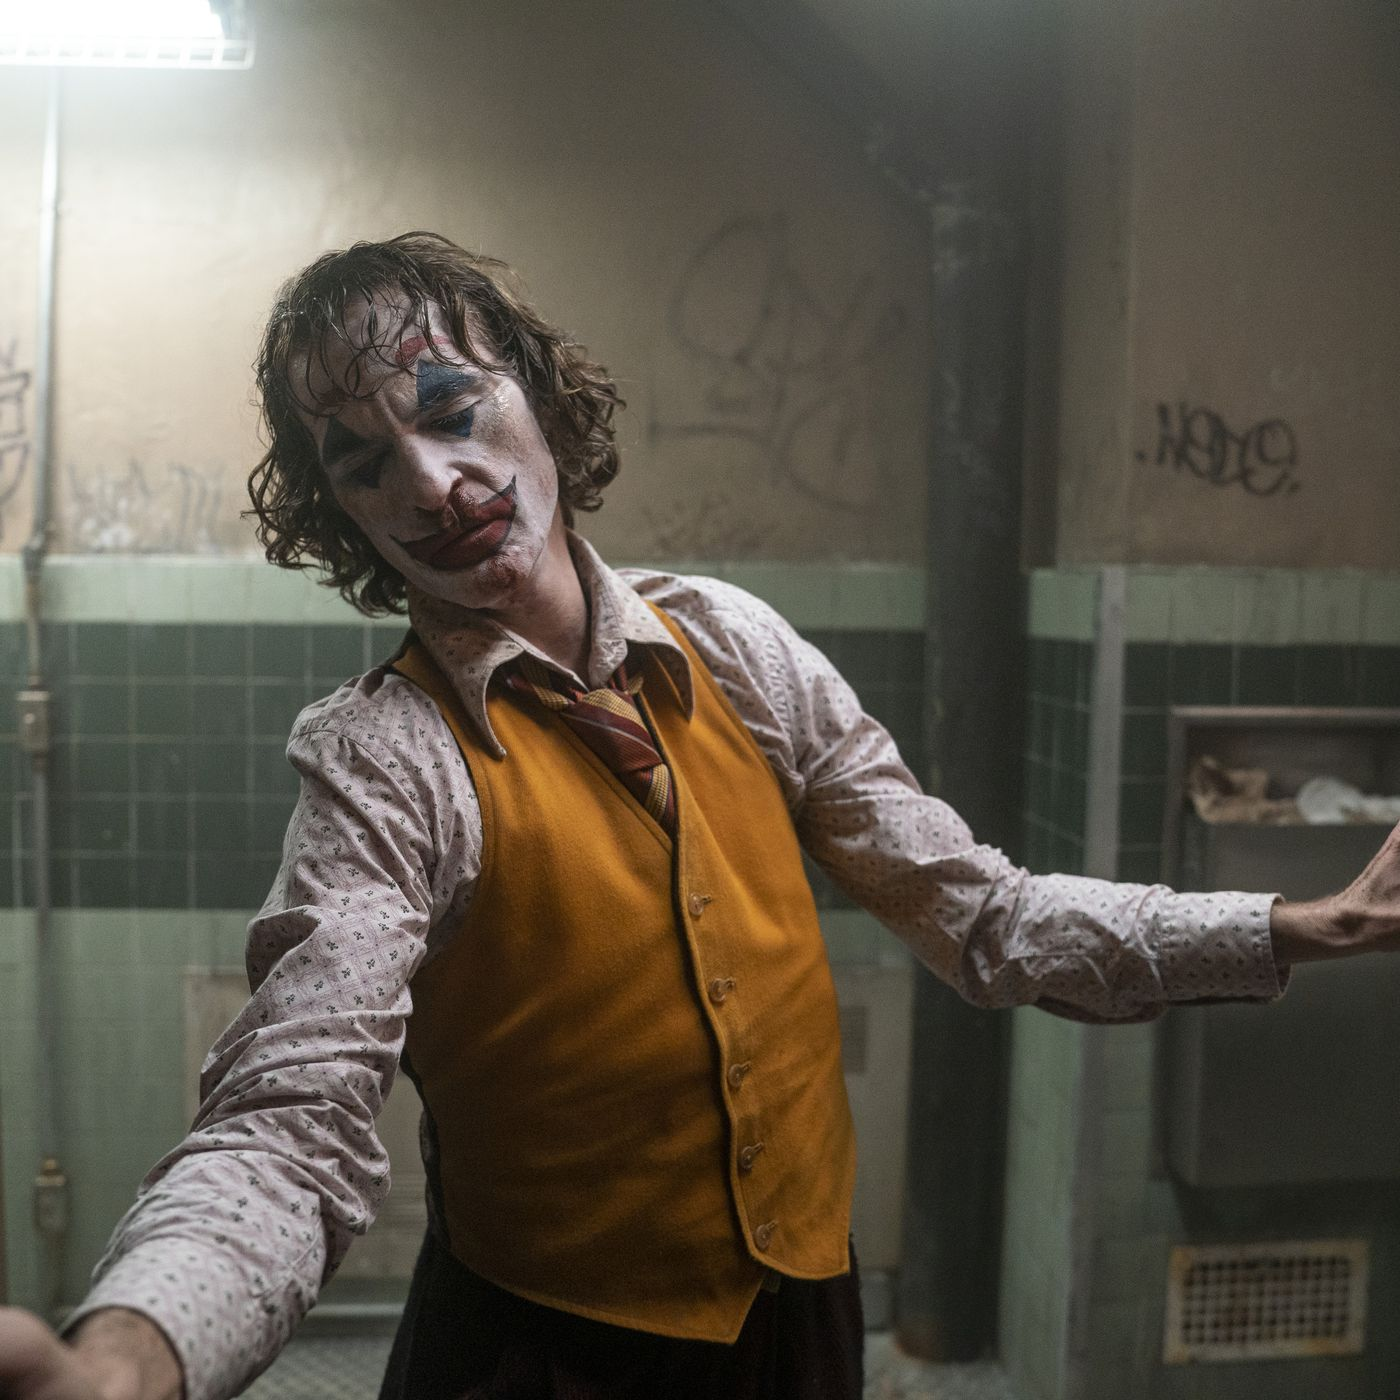 Joker Movie Controversy Why Experts Agree The Film Is A Problem Deseret News